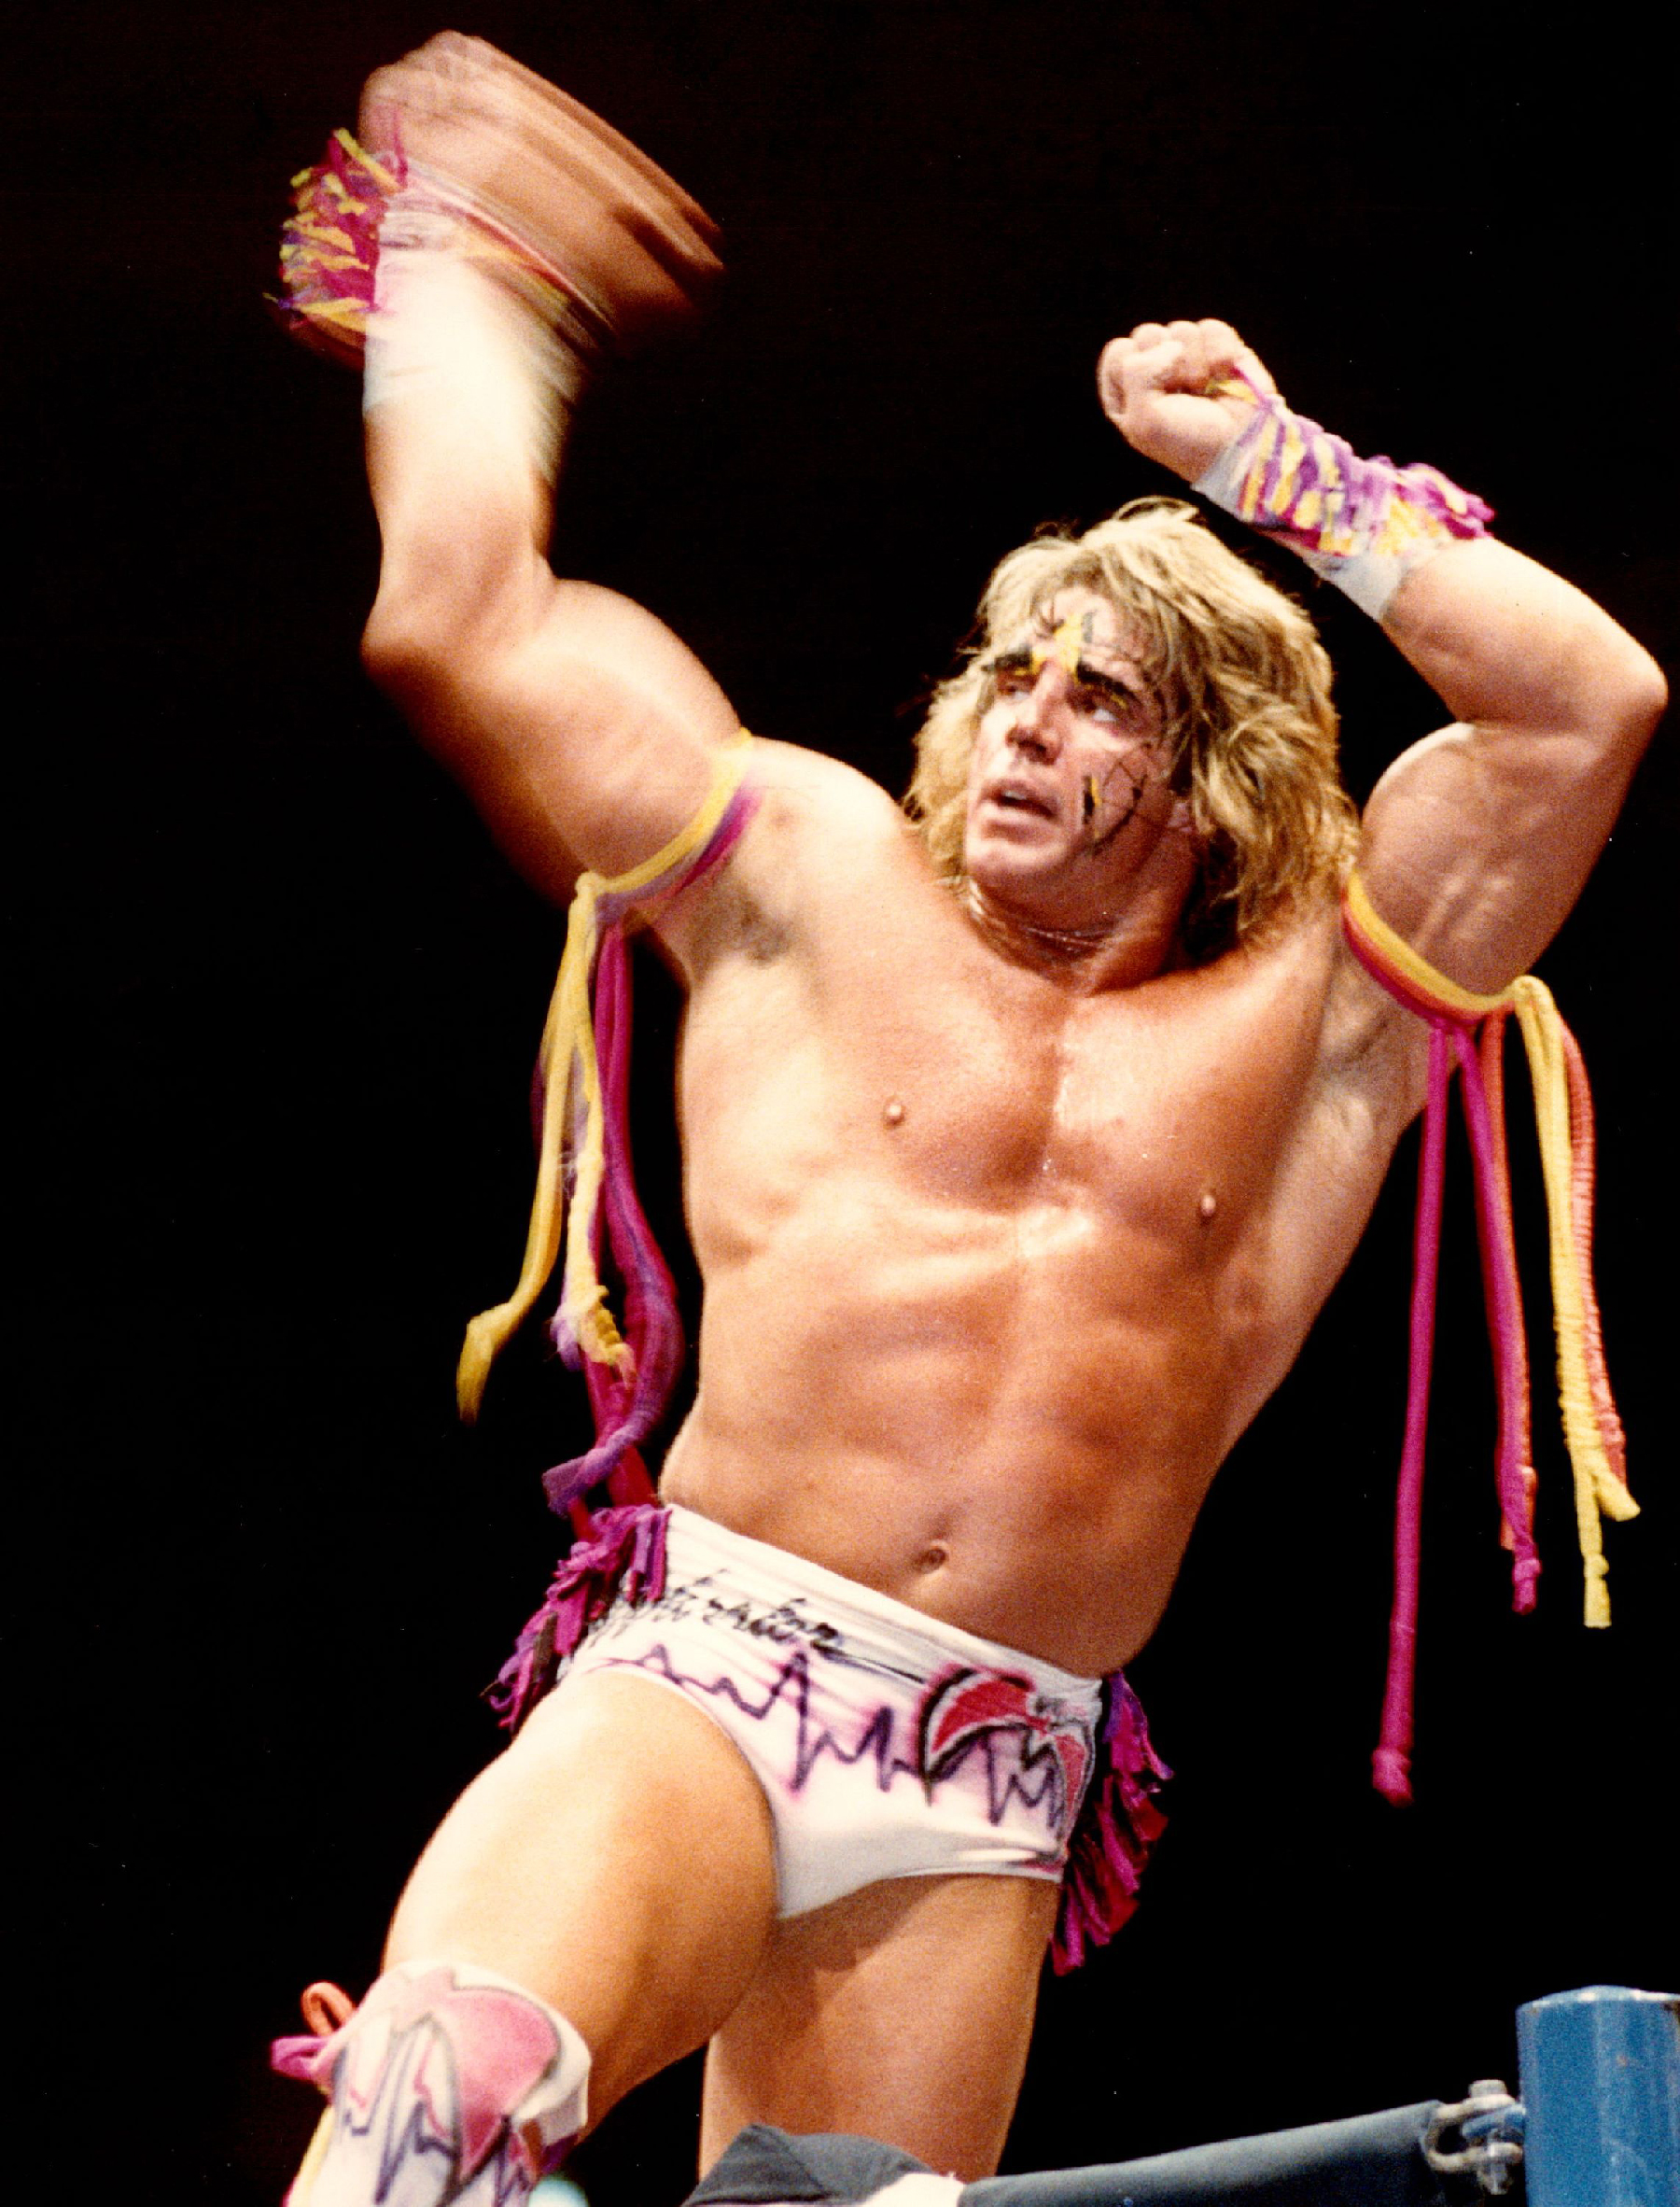 WWE Star Ultimate Warrior Dead at 54